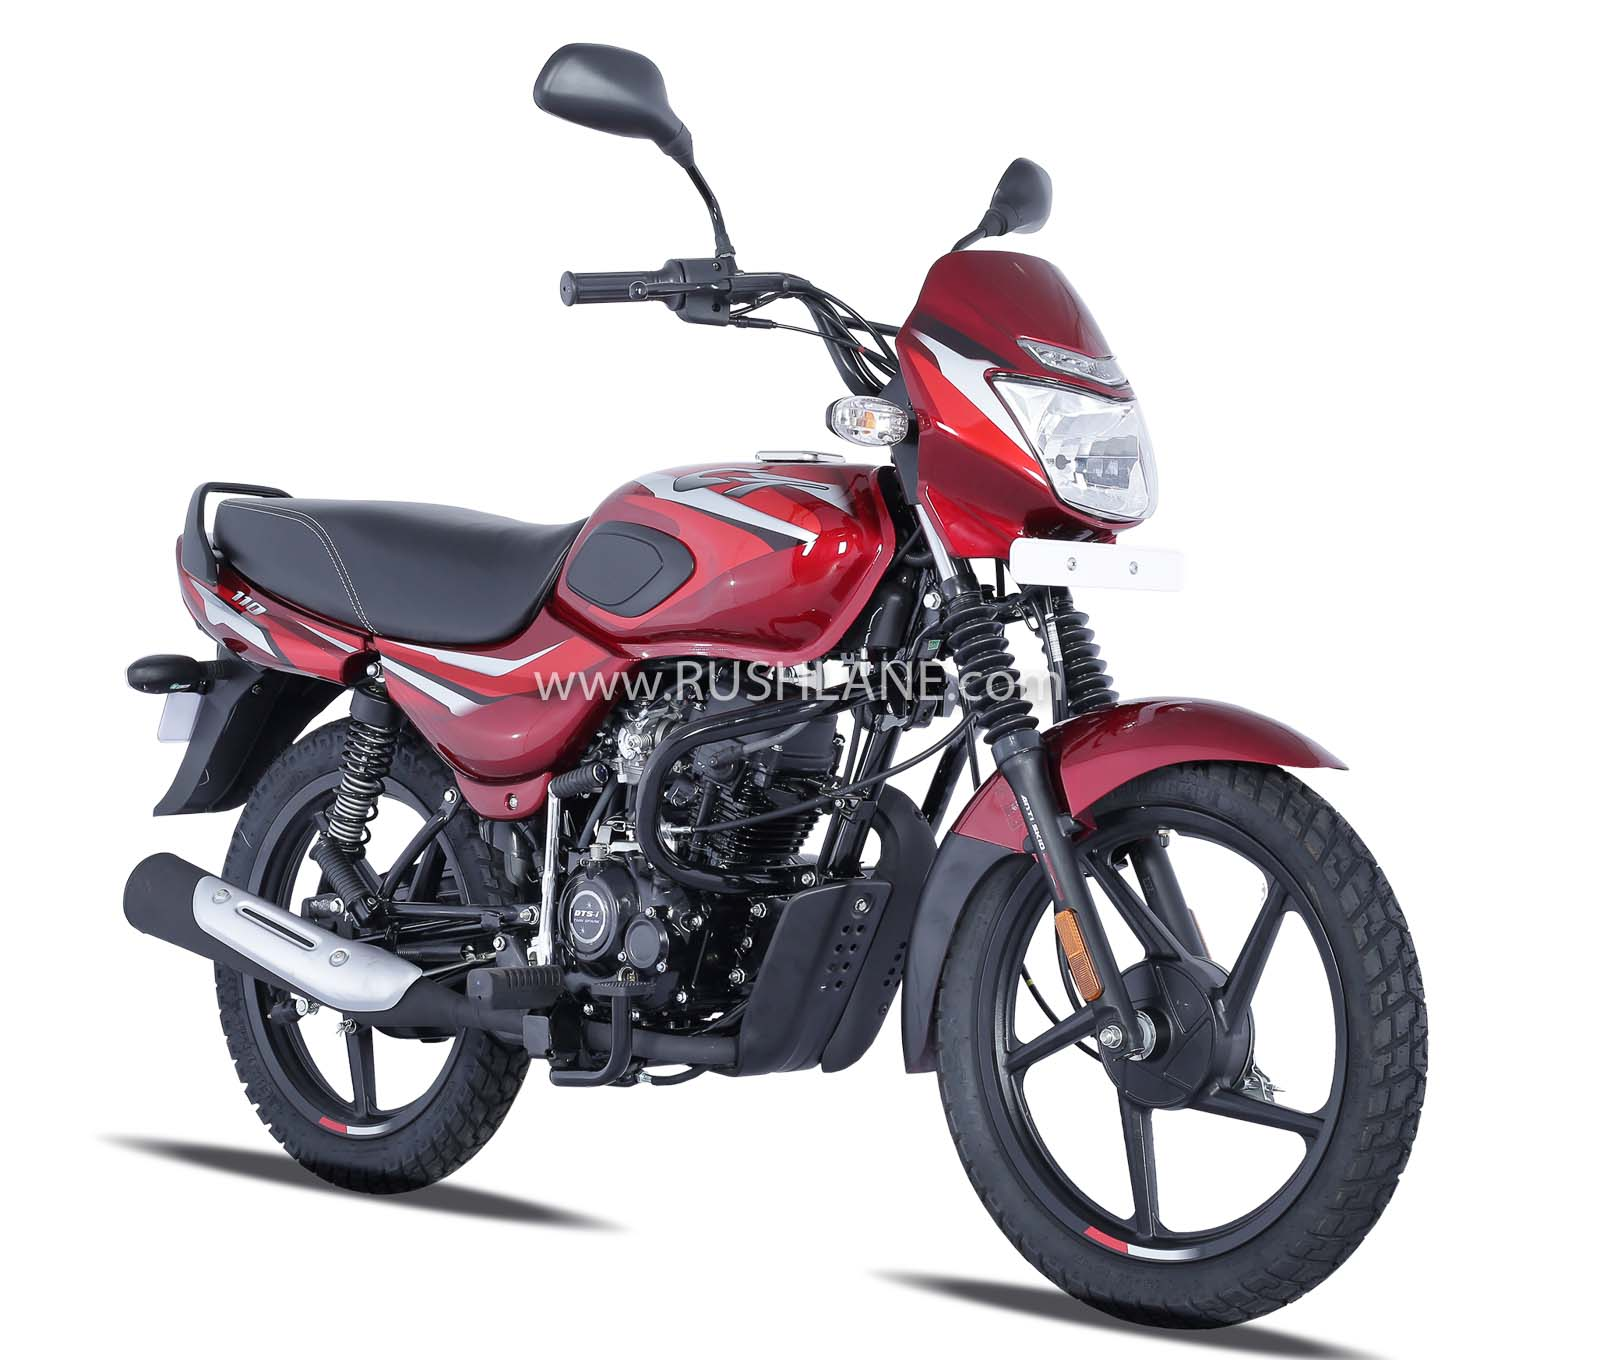 Bajaj CT 110 BS6